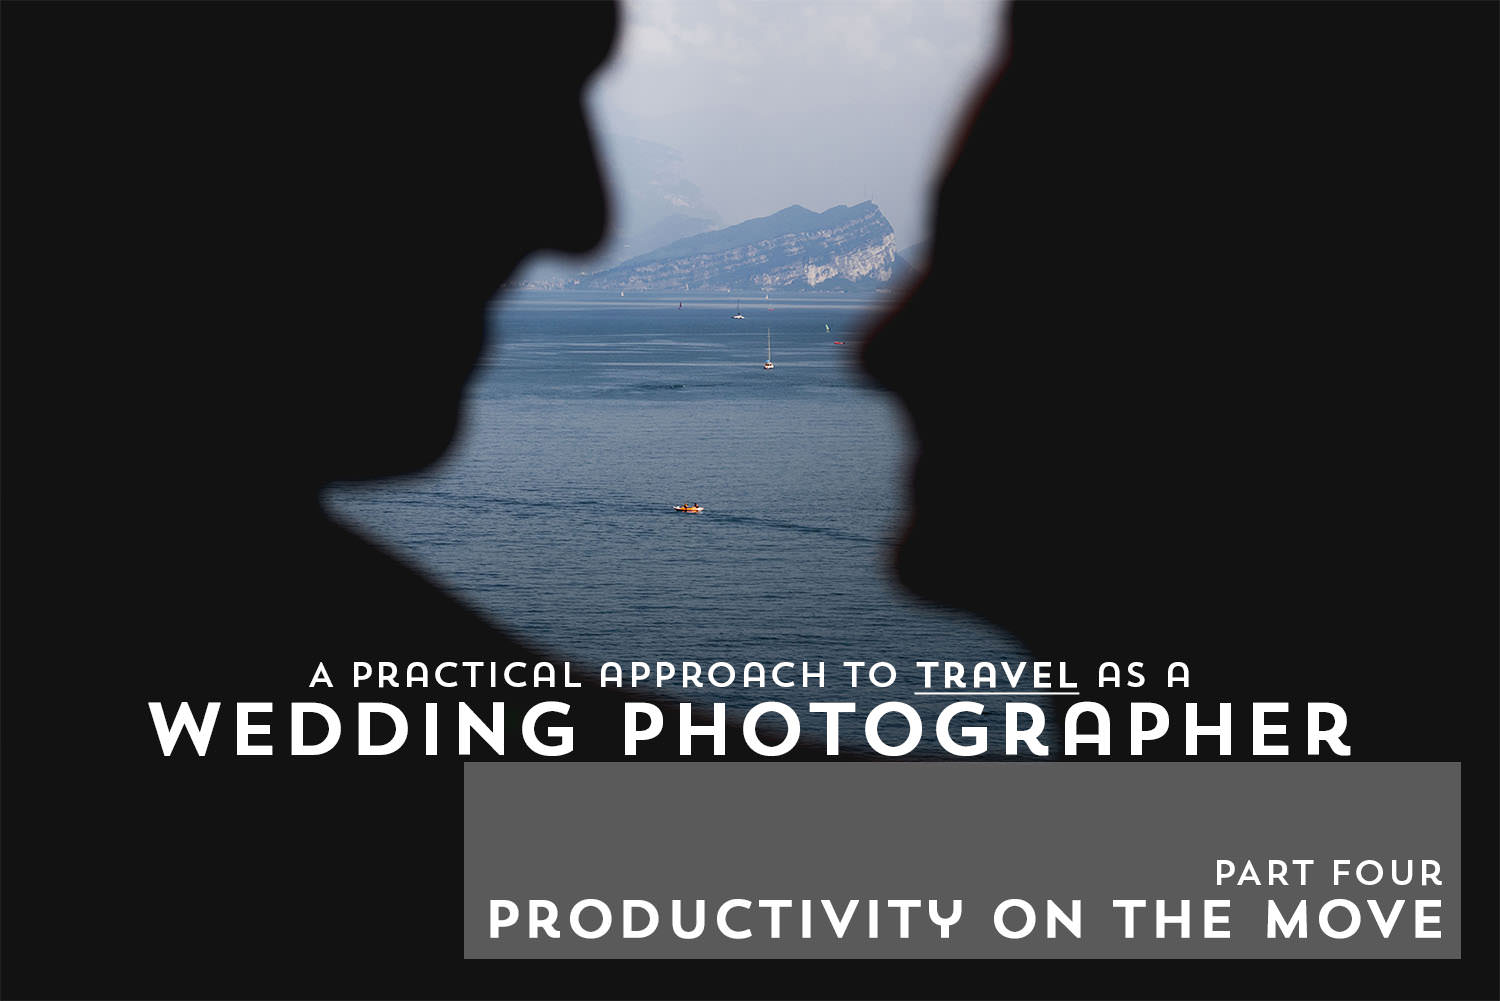 Best Destination Wedding Photographer Productivity on the move